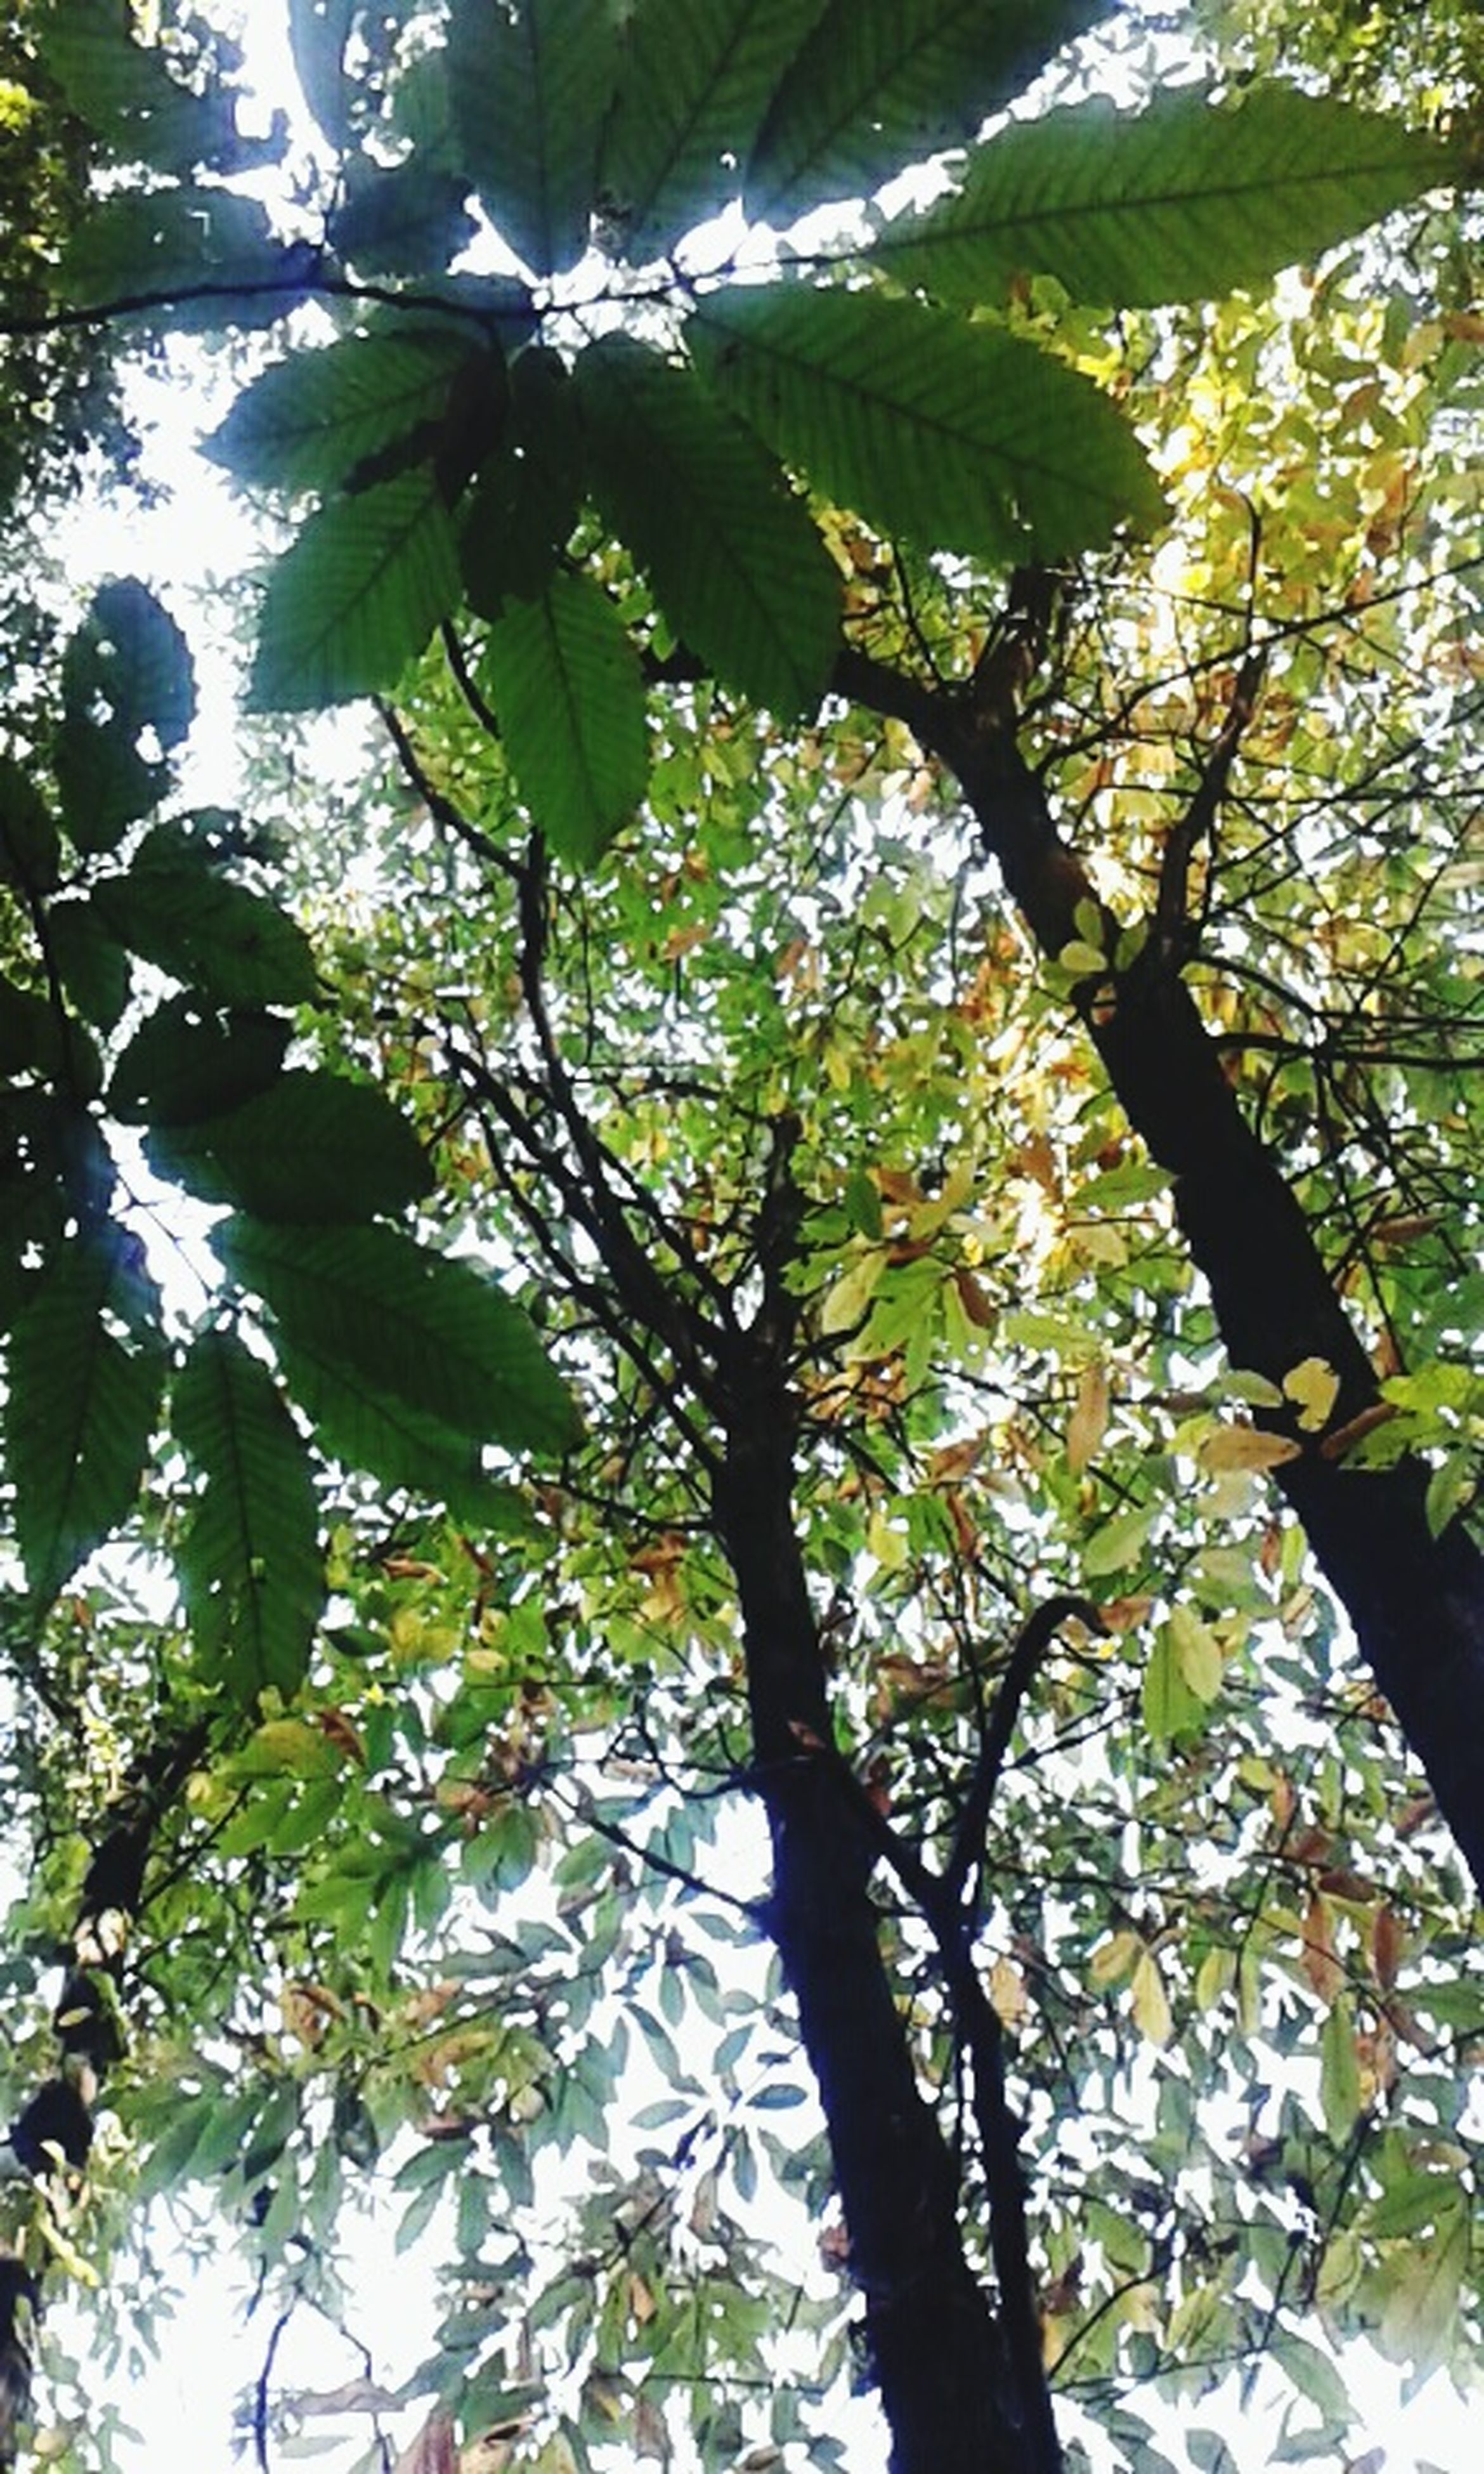 tree, low angle view, branch, growth, nature, leaf, green color, tranquility, tree trunk, beauty in nature, full frame, backgrounds, day, outdoors, no people, sky, sunlight, close-up, forest, scenics